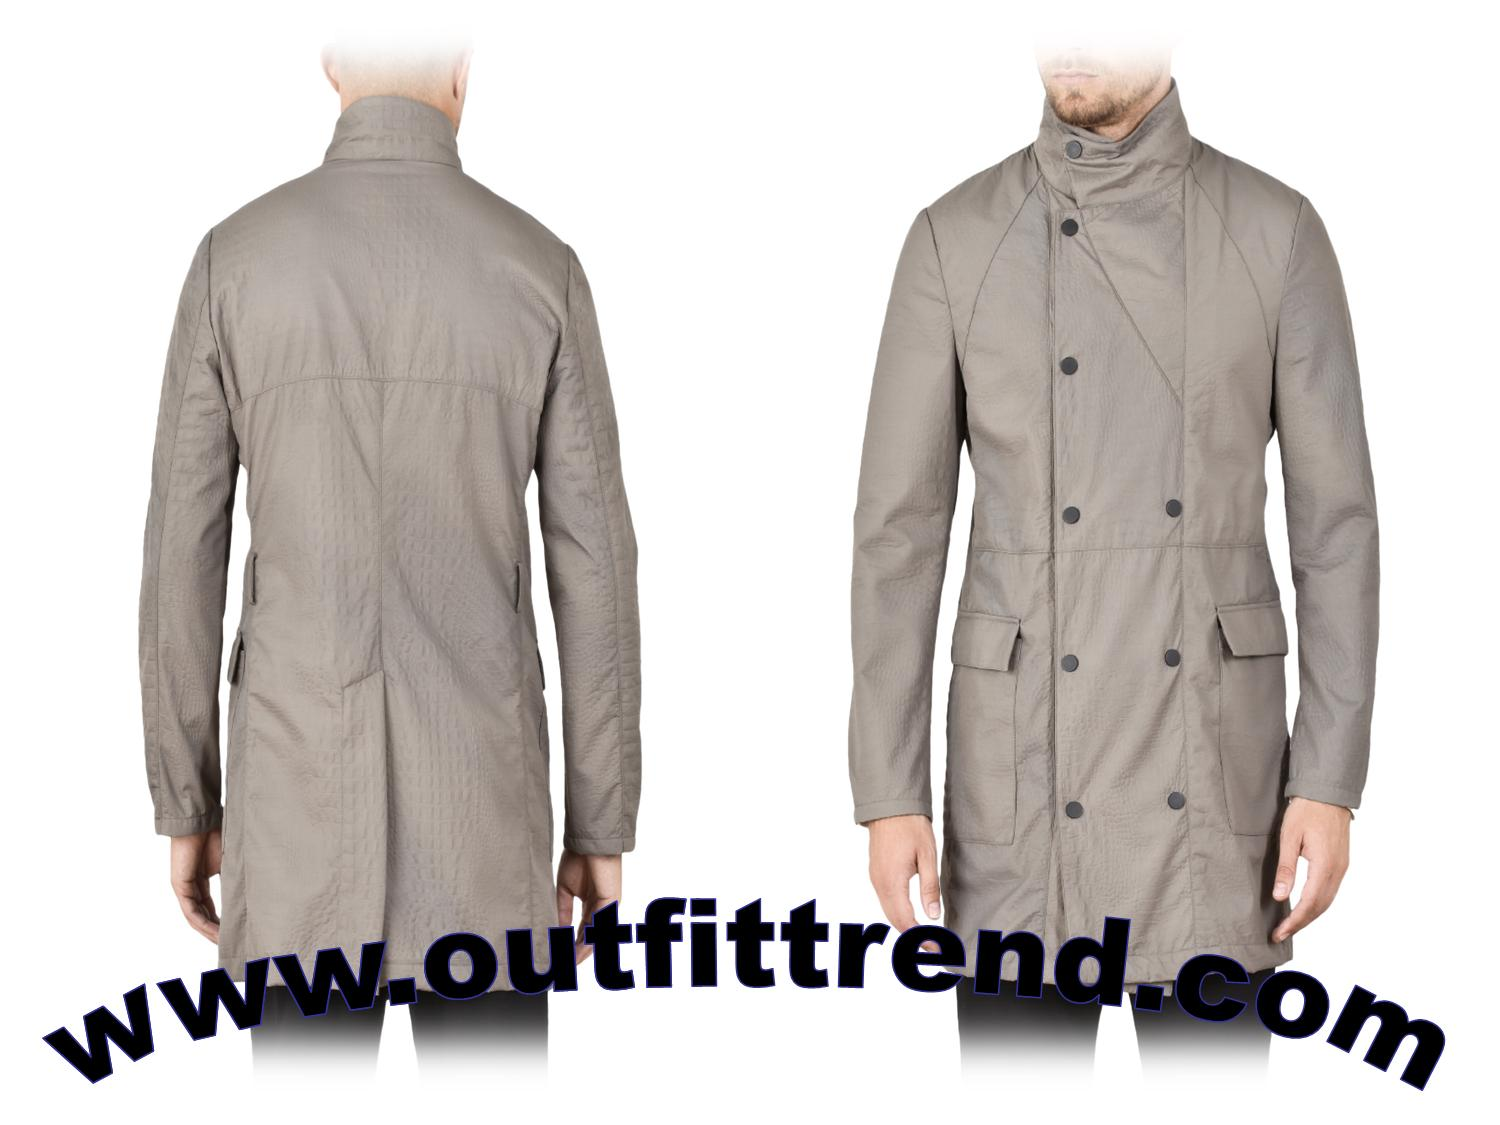 emorio armani male trench spring outfit